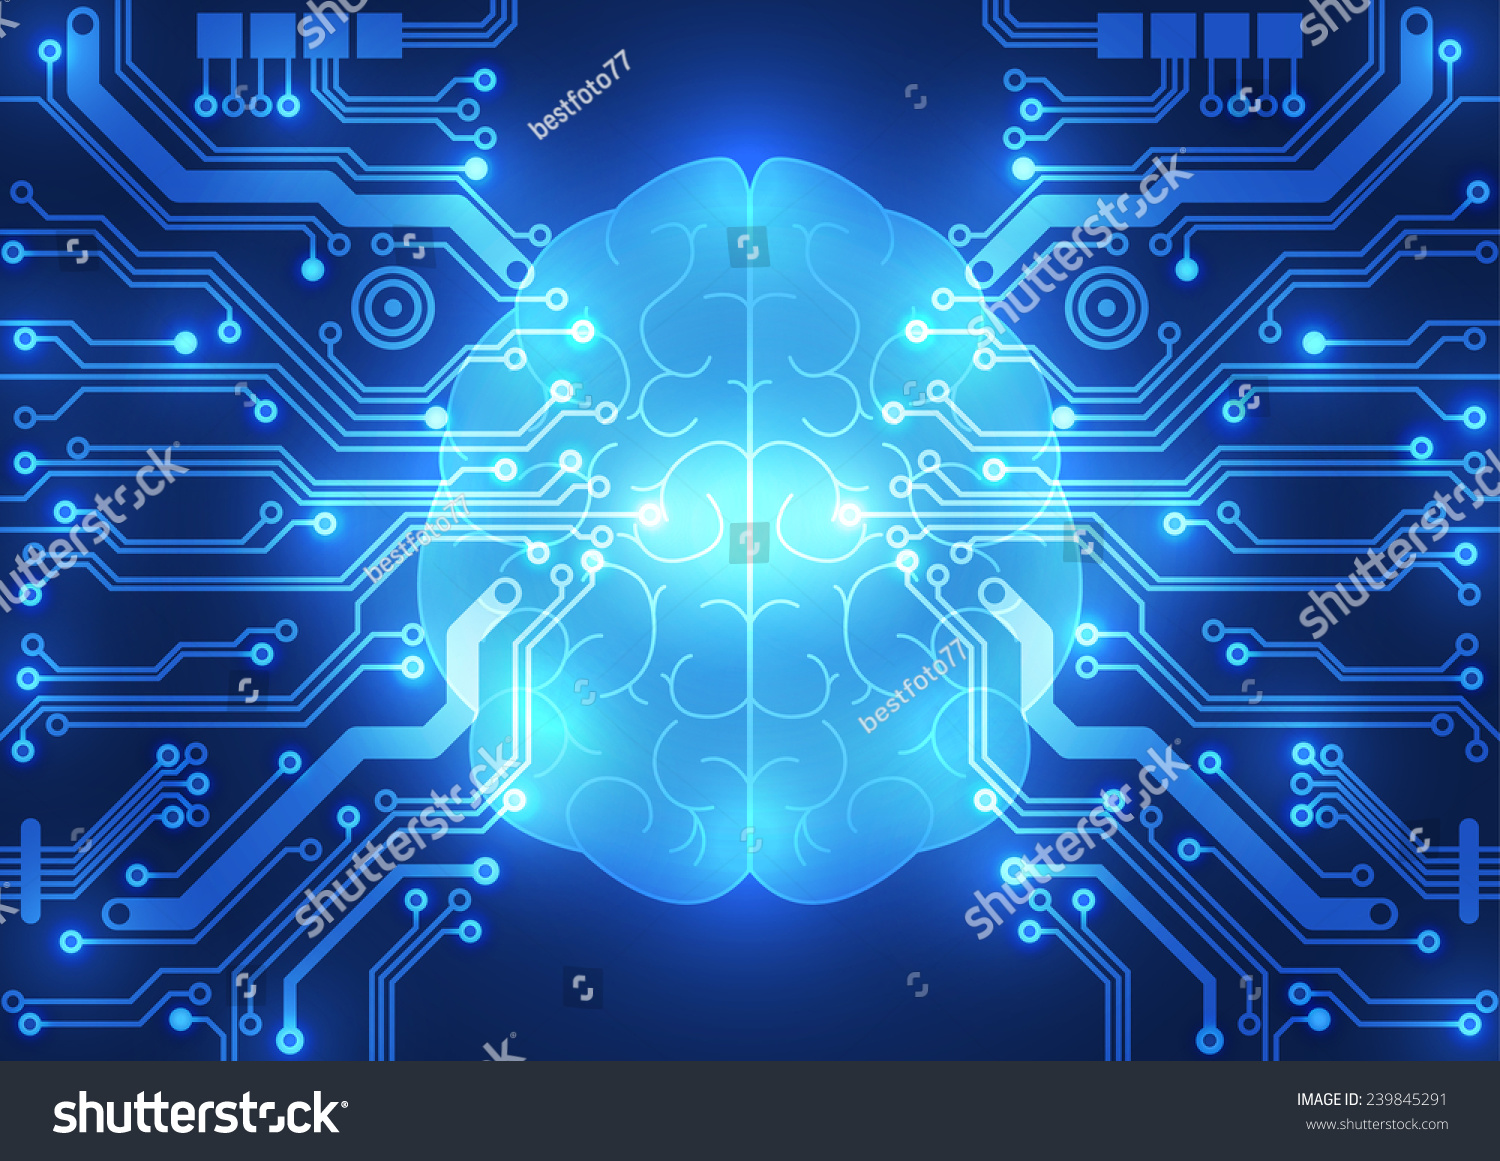 Abstract Electric Circuit Digital Braintechnology Concept Stock ...